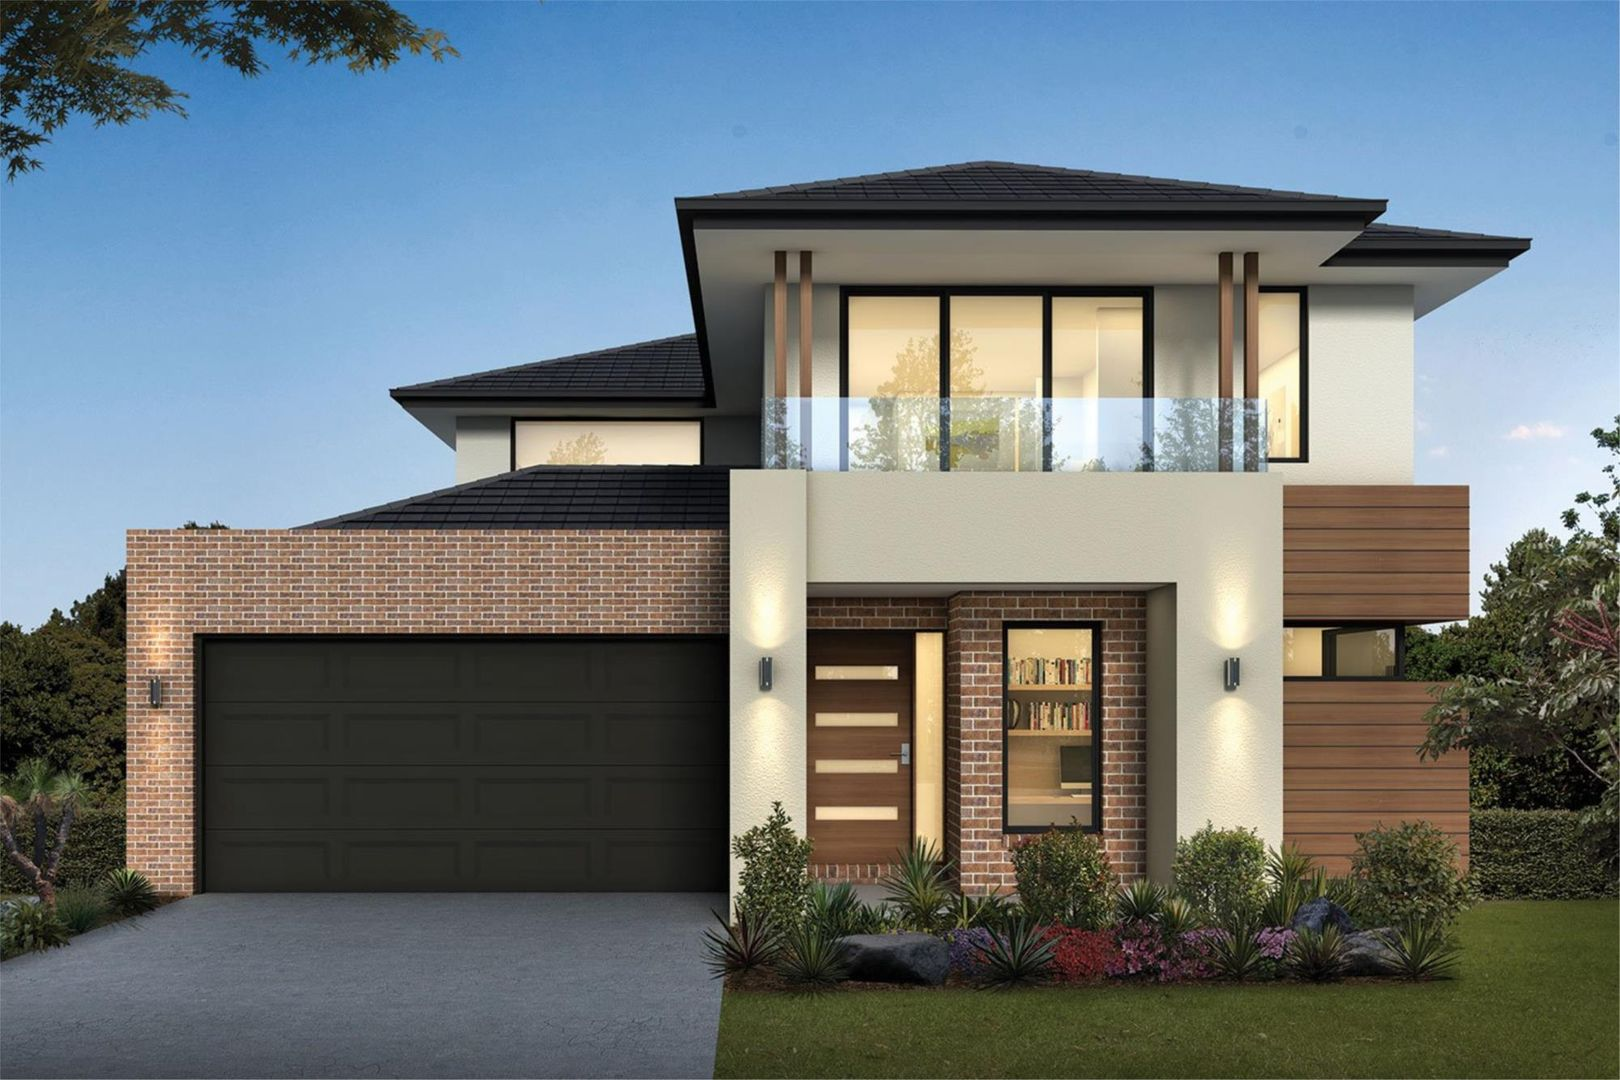 Lot 611 New Road, Rochedale QLD 4123, Image 0